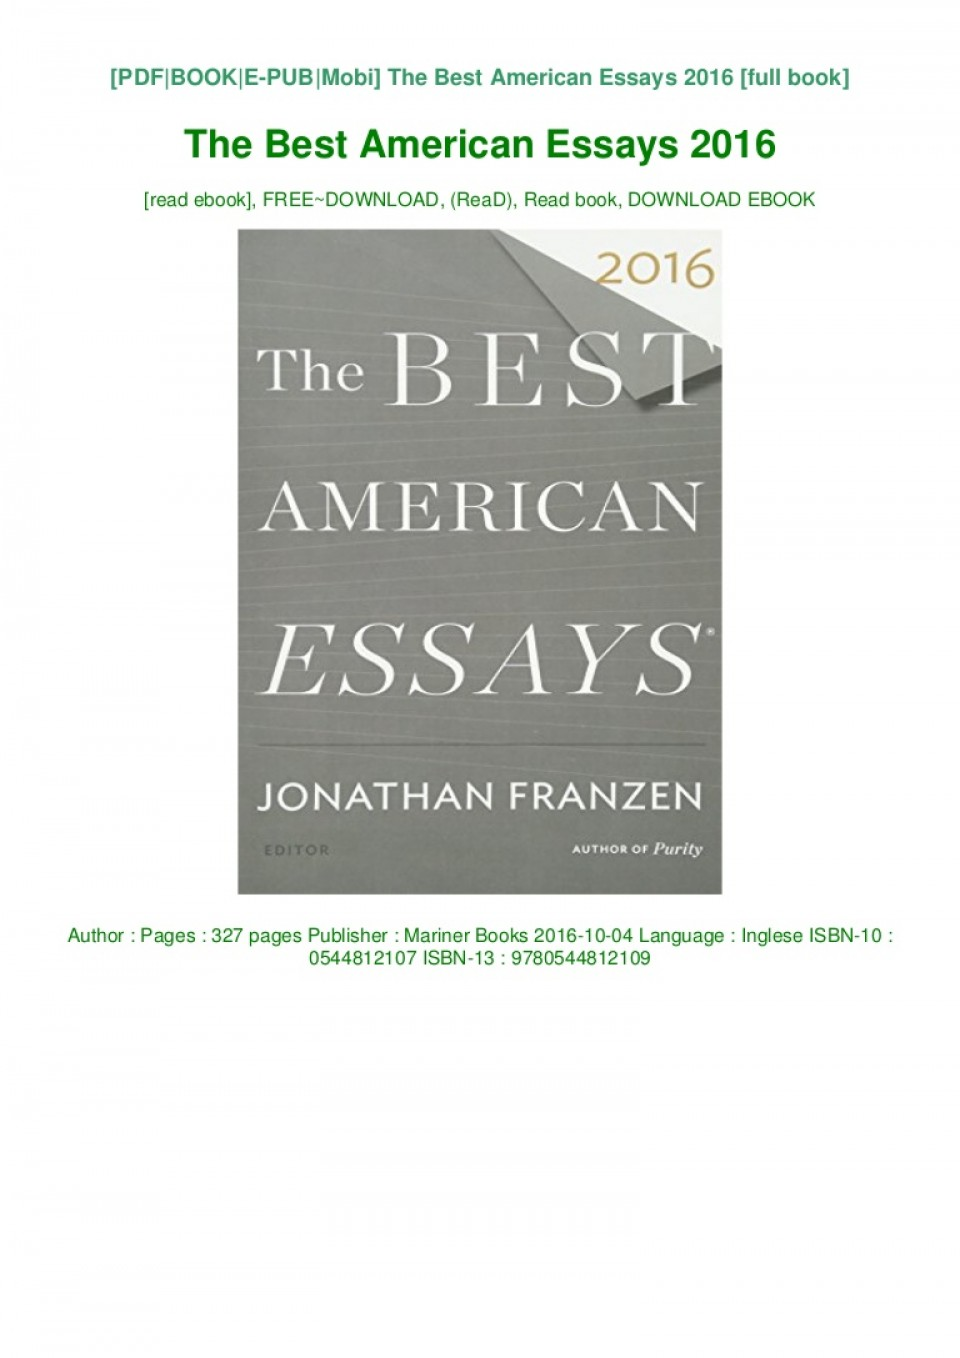 014 The Best American Essays Essay Example Download Pdf Epub Audiobook Ebook Thumbnail Wonderful 2013 Of Century Sparknotes 2017 960